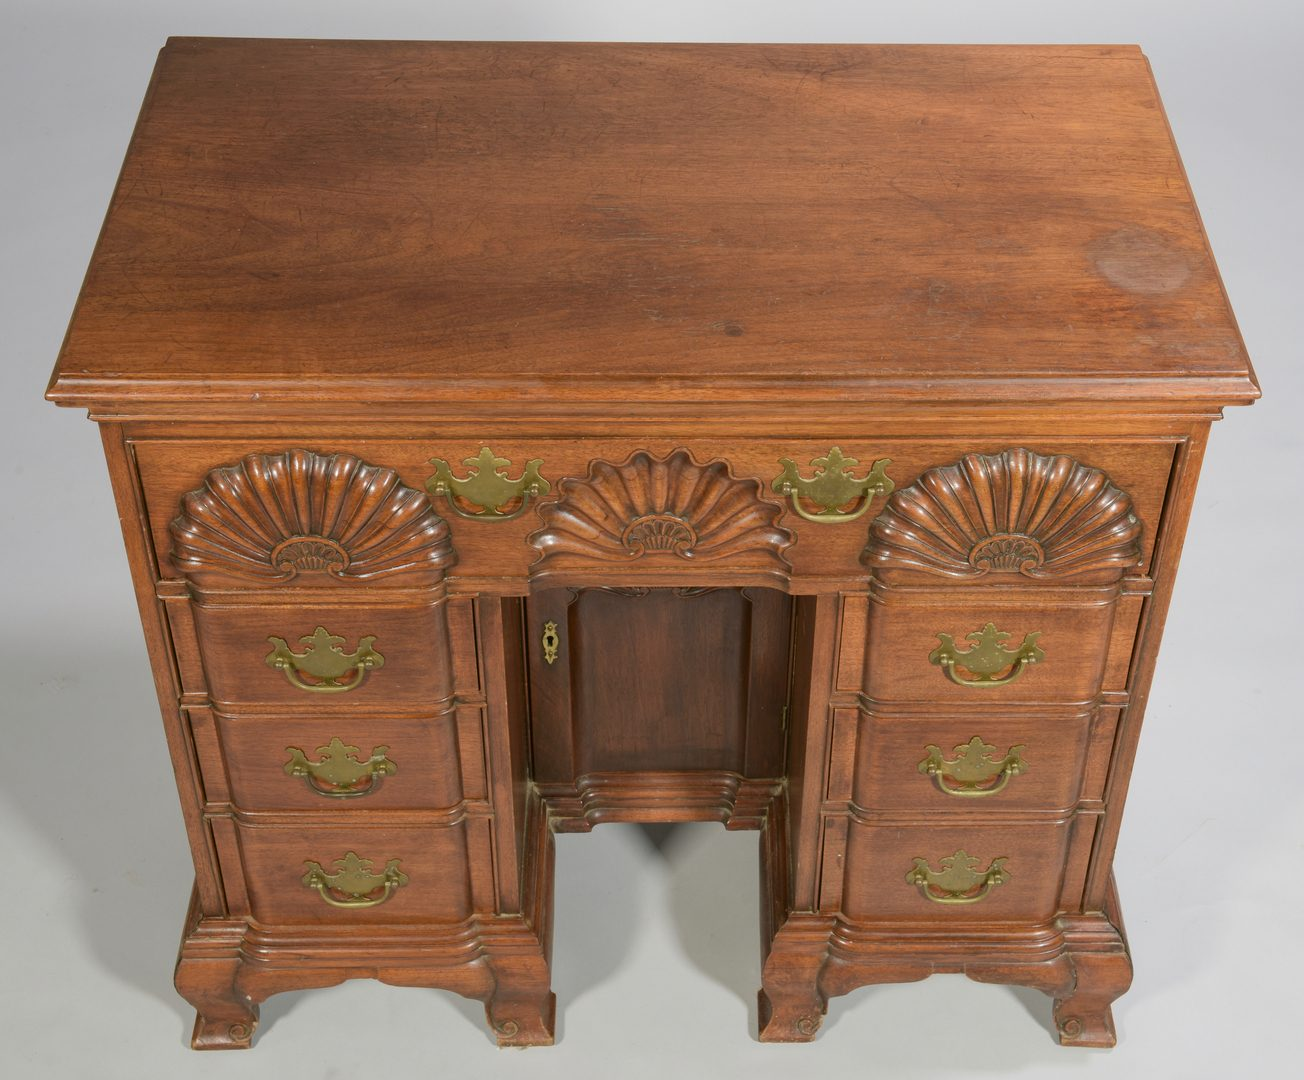 Lot 581: Chippendale Style Block and Shell Desk